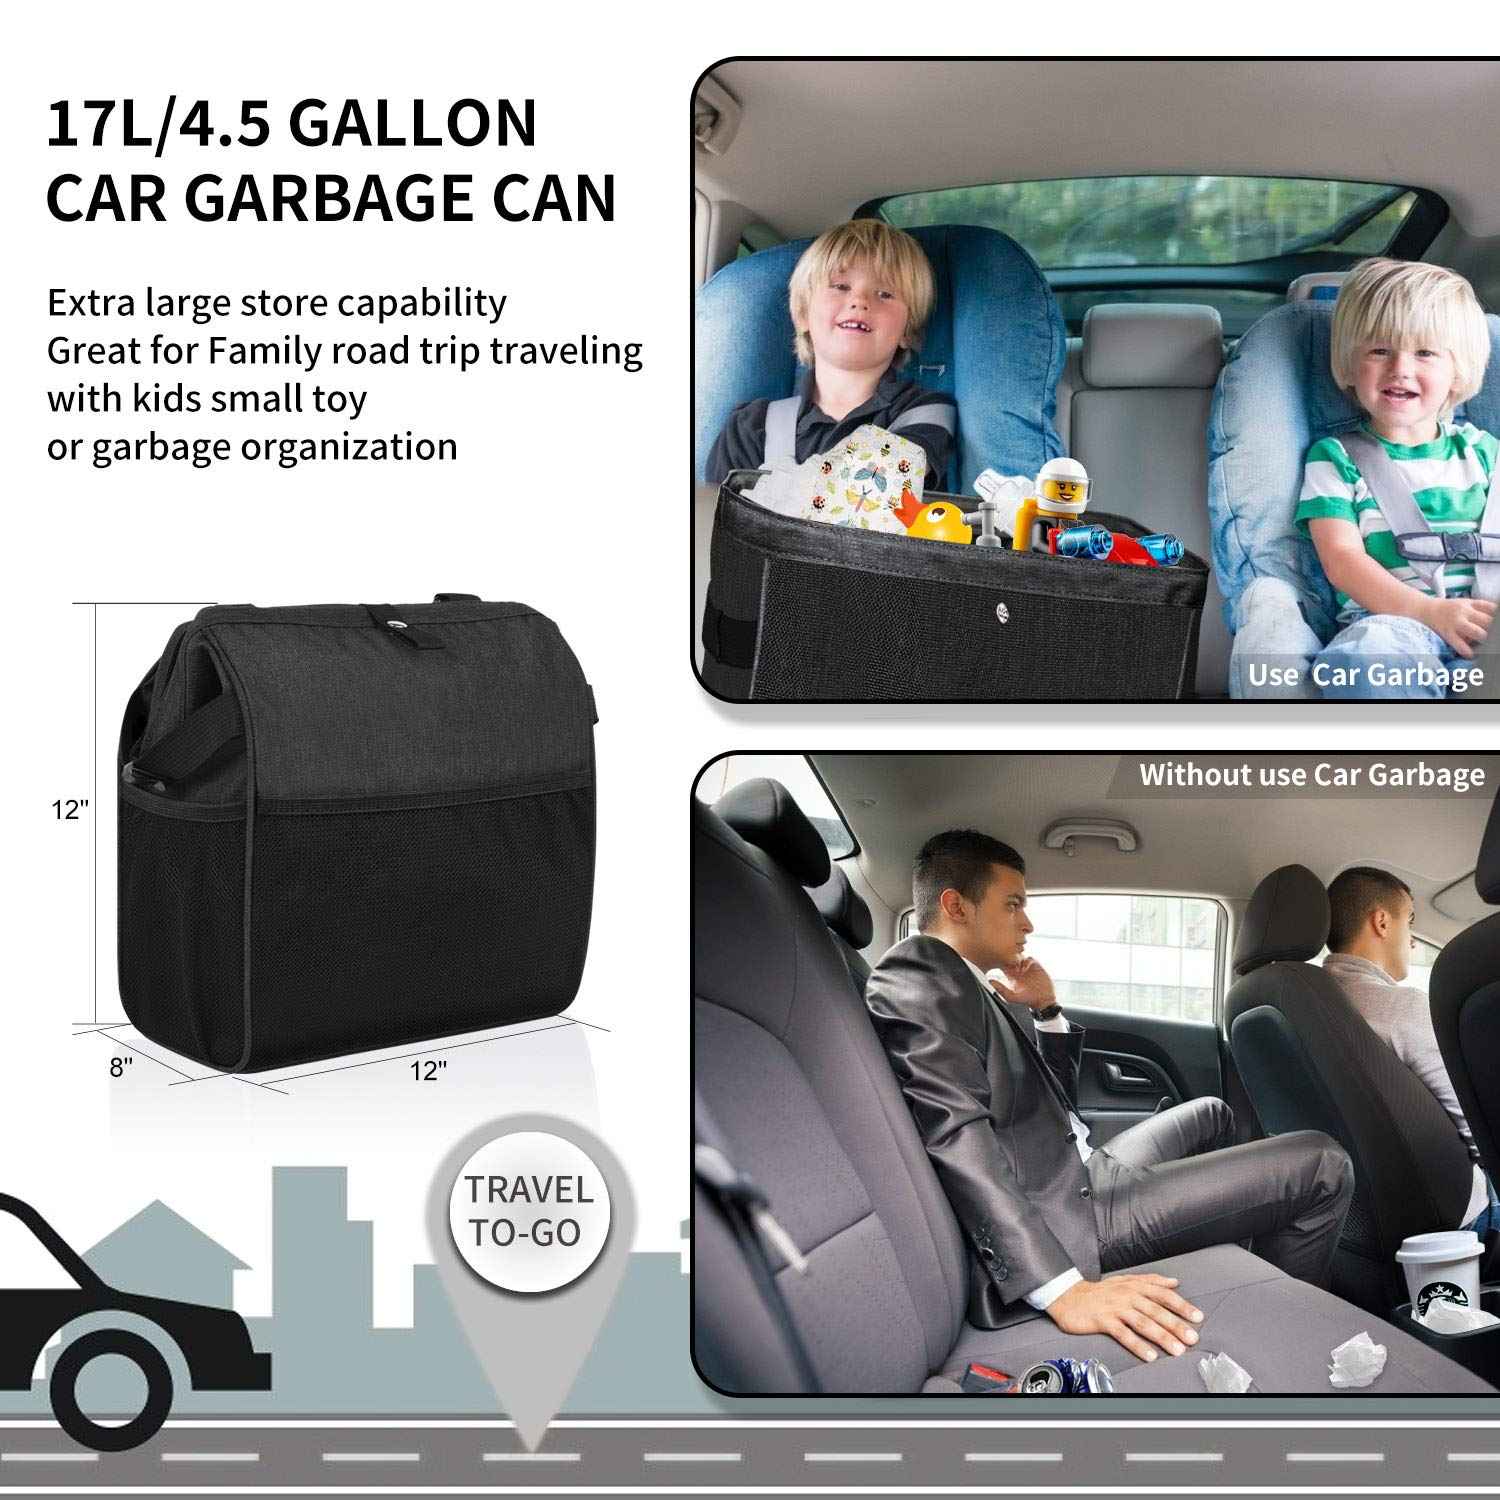 Car Trash Can Automotive Garbage Bin Car Trash Bag Collapsible Vehicle Travel Trash Container Car Garbage Organizer Car Garbage Holder with Waterproof Lining and Steel Frame Closure Car Accessories for Truck F150 SUV Jeep Pickup RV Trailer